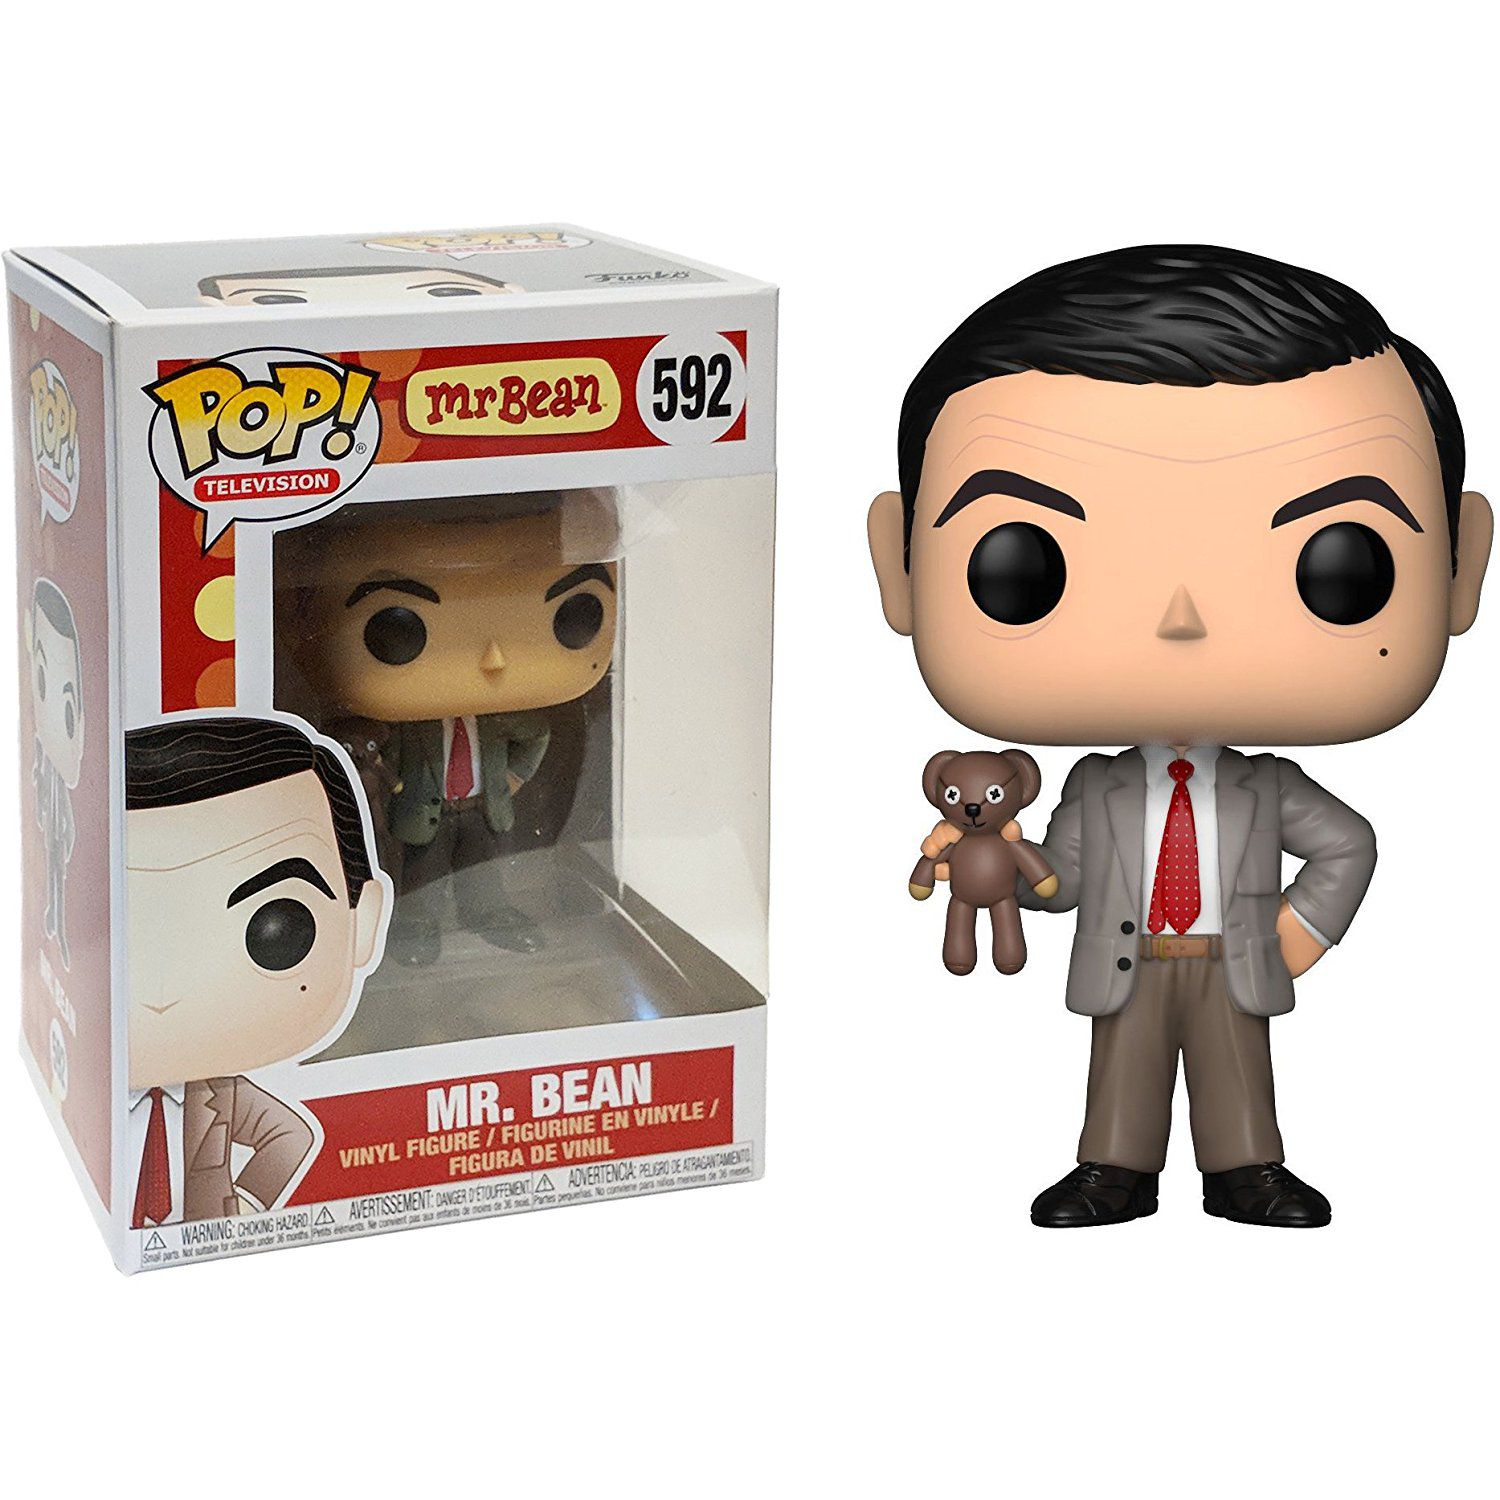 Mr. Bean Funko Pop! TV Vinyl Figures